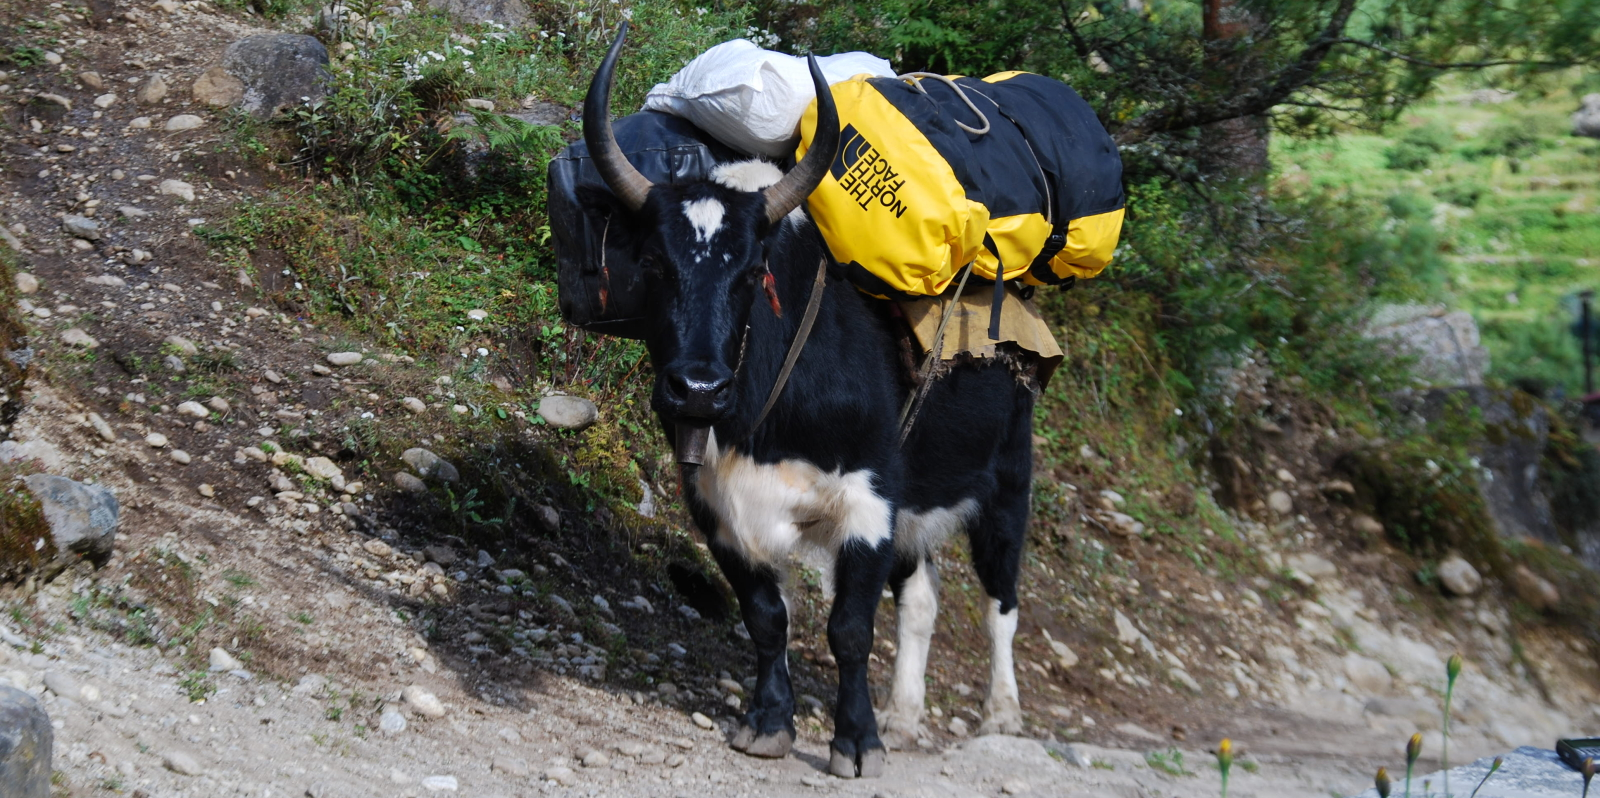 Yak Porter going to Everest Base Camp